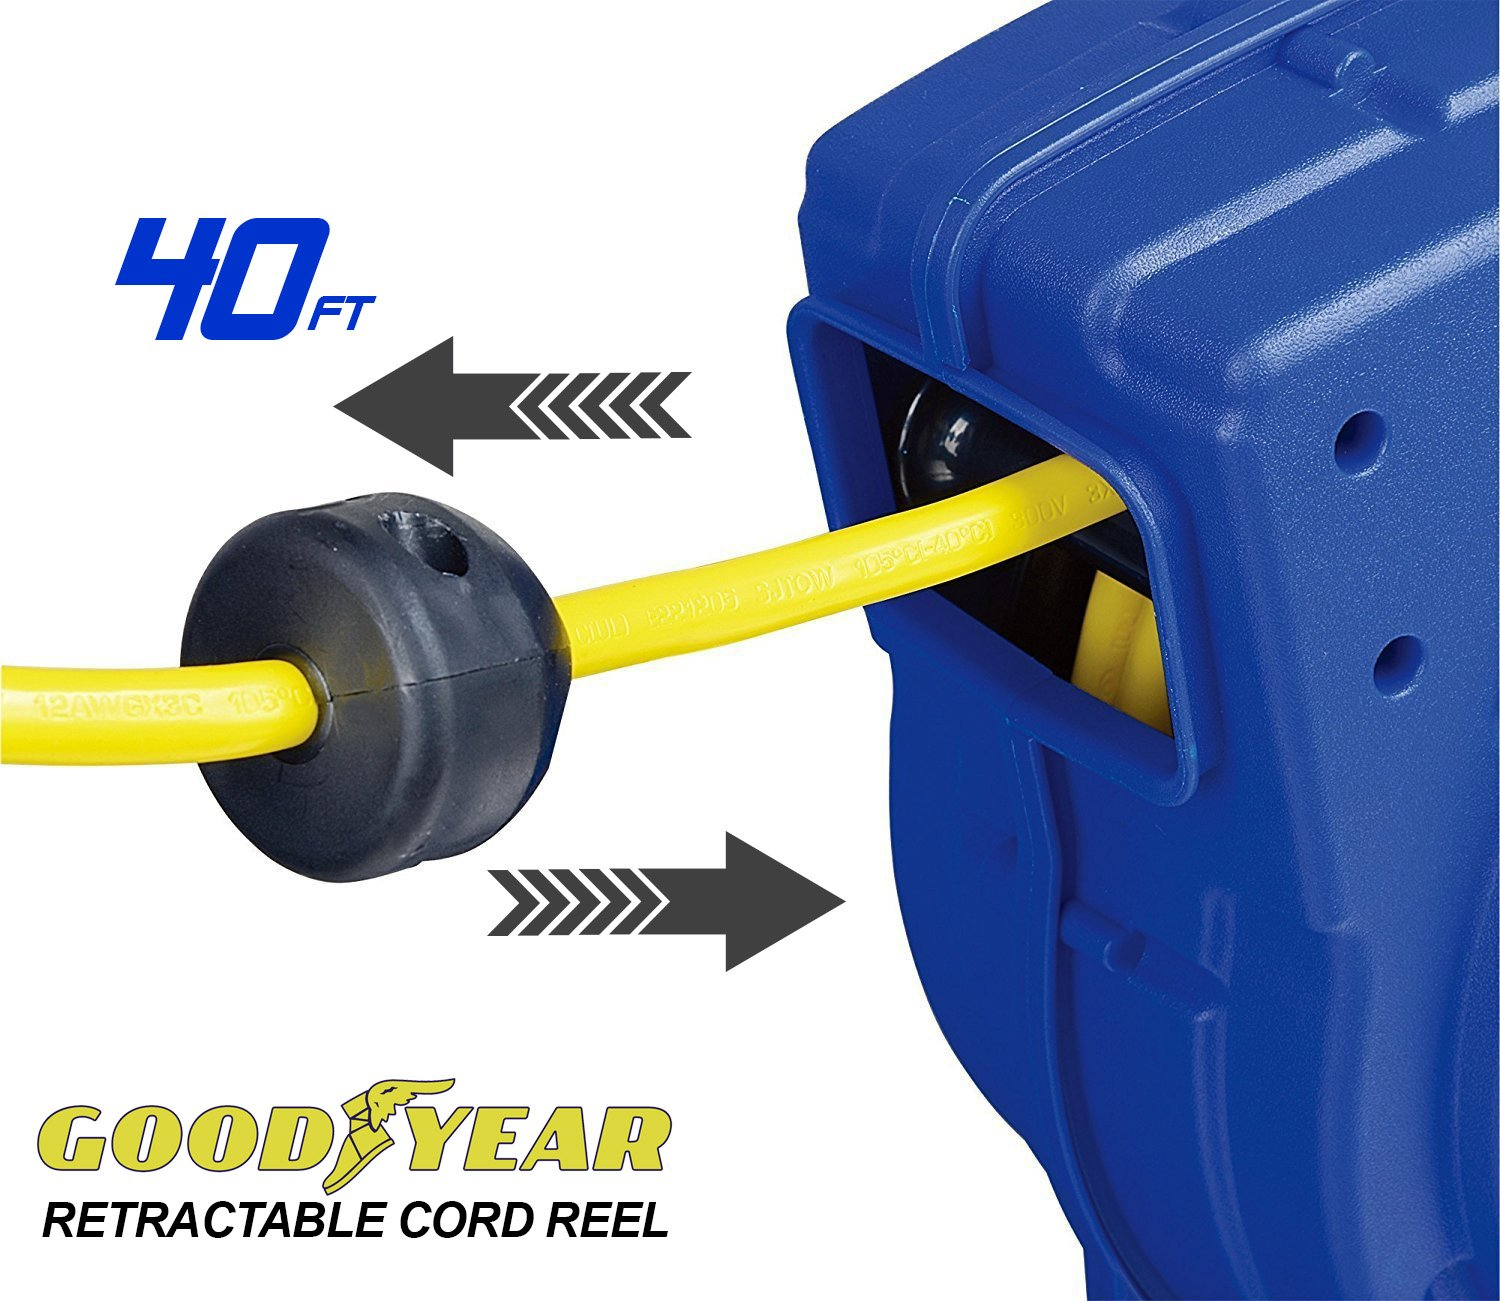 Goodyear Extension Cord Reel Heavy Duty, 40 ft., 12AWG/3C SJTOW, Triple Tap with LED Lighted Connector by Goodyear (Image #7)